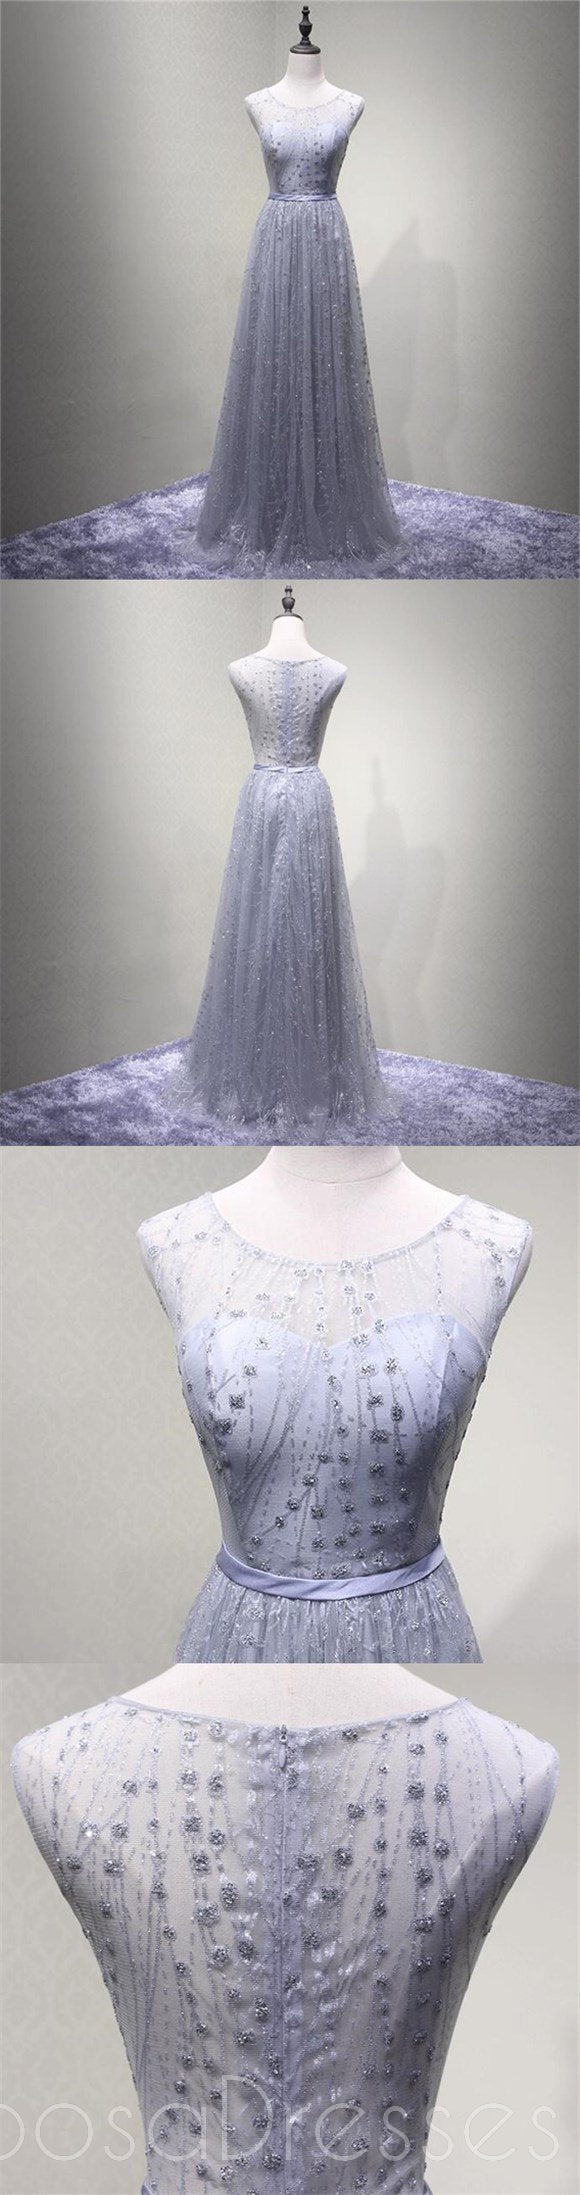 See Through Gray Lace Beaded Scoop Neckline Evening Prom Dresses, Popular Lace Party Prom Dresses, Custom Long Prom Dresses, Cheap Formal Prom Dresses, 17187